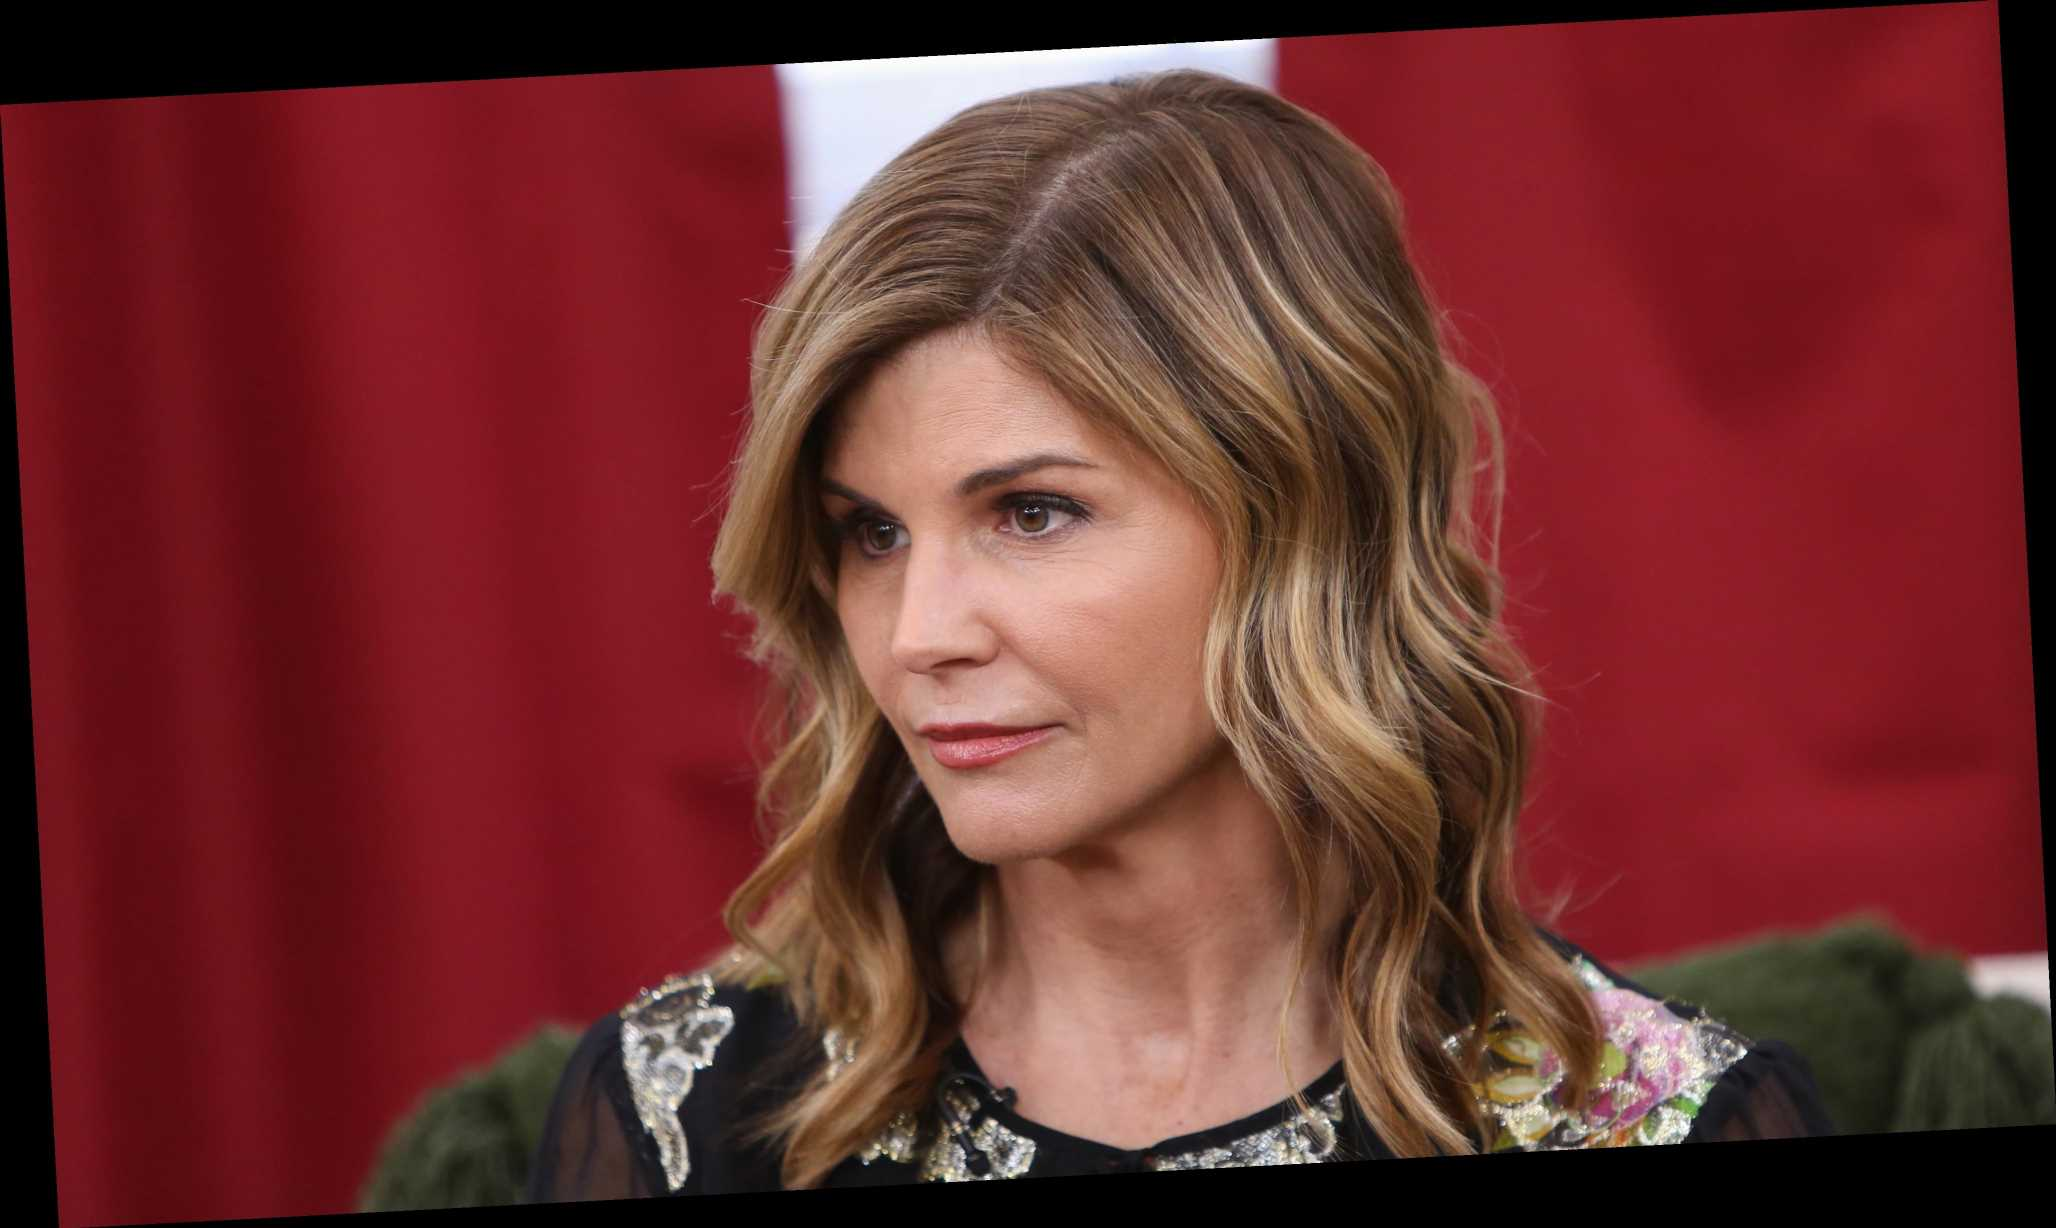 What's next for Lori Loughlin after her prison release?